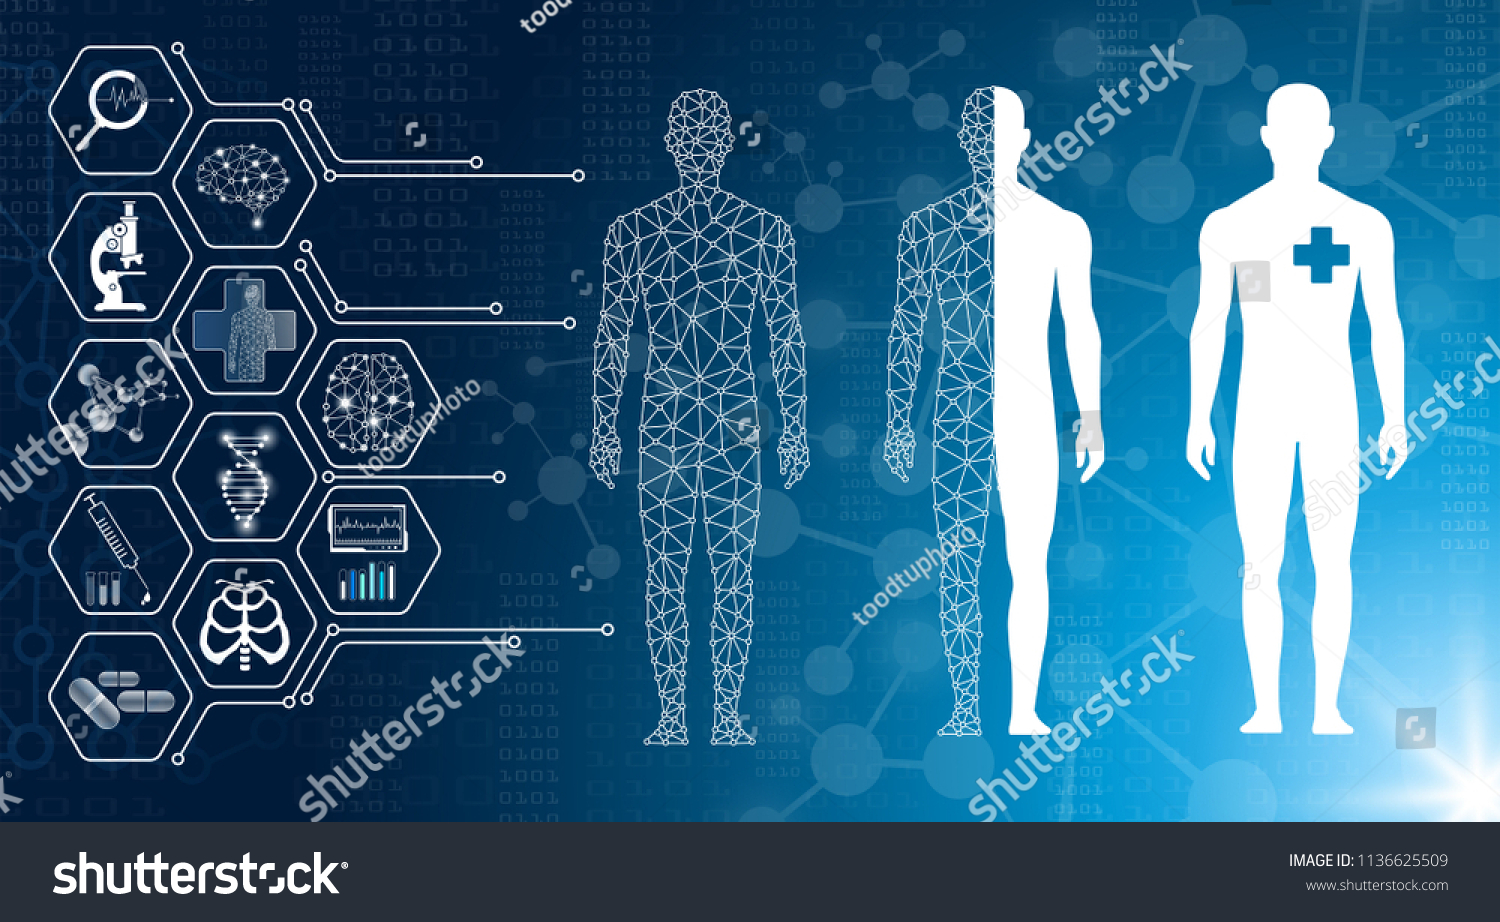 hight resolution of abstract background technology concept in blue light brain and human body heal technology modern